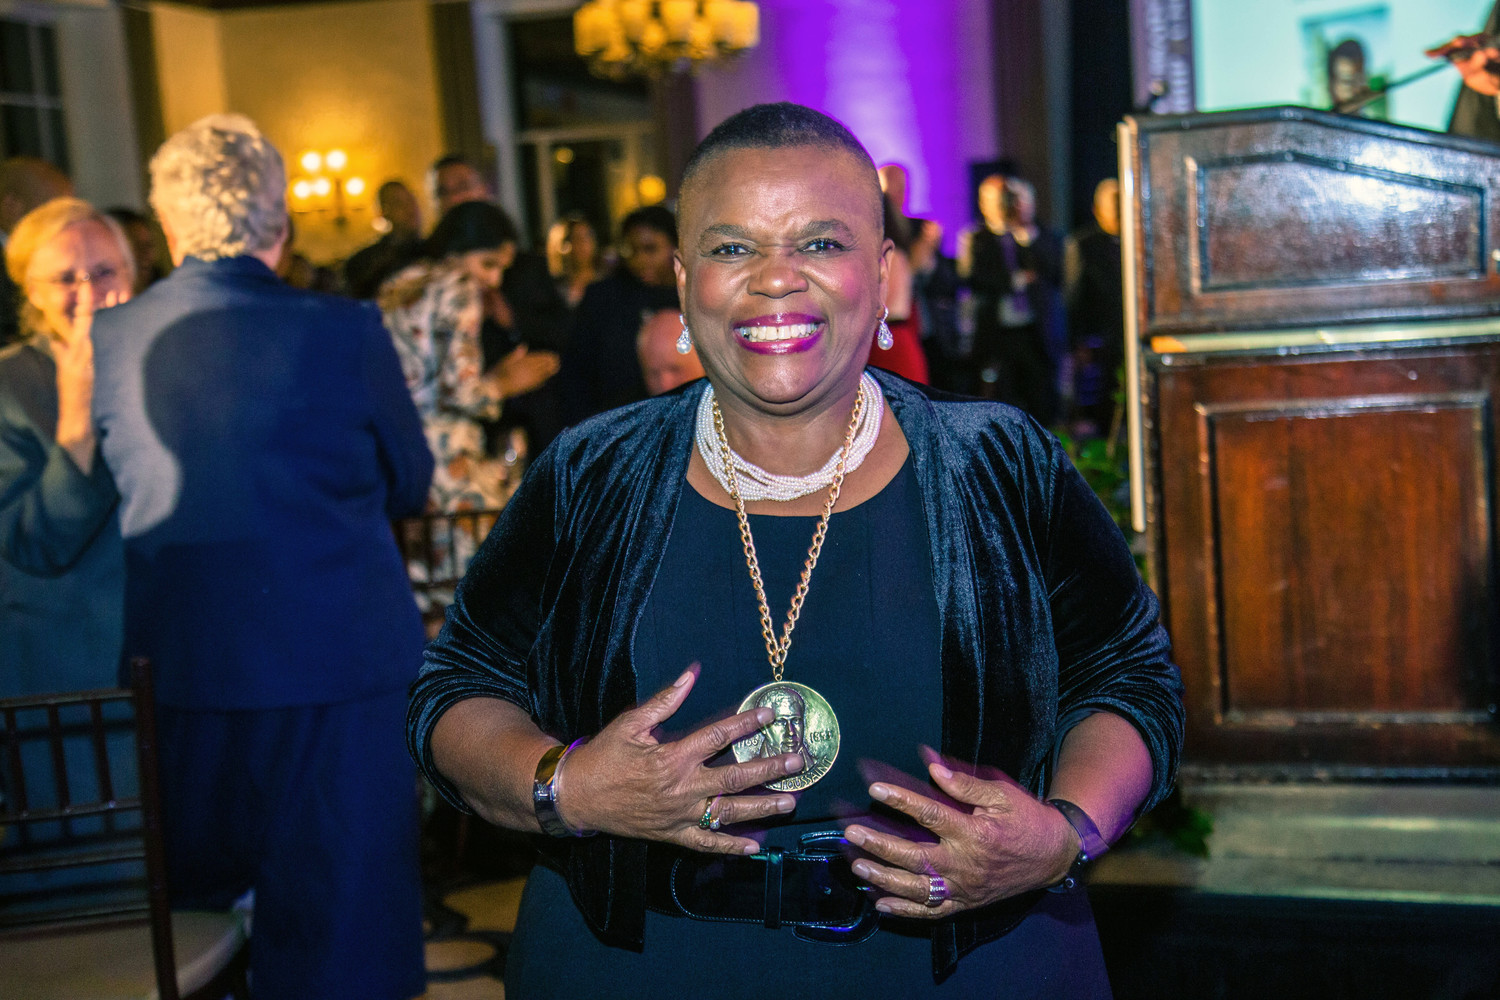 Dr. Pernessa C. Steele, founder and CEO of The Balm in Gilead, was a 2017 Pierre Toussaint medallion recipient.